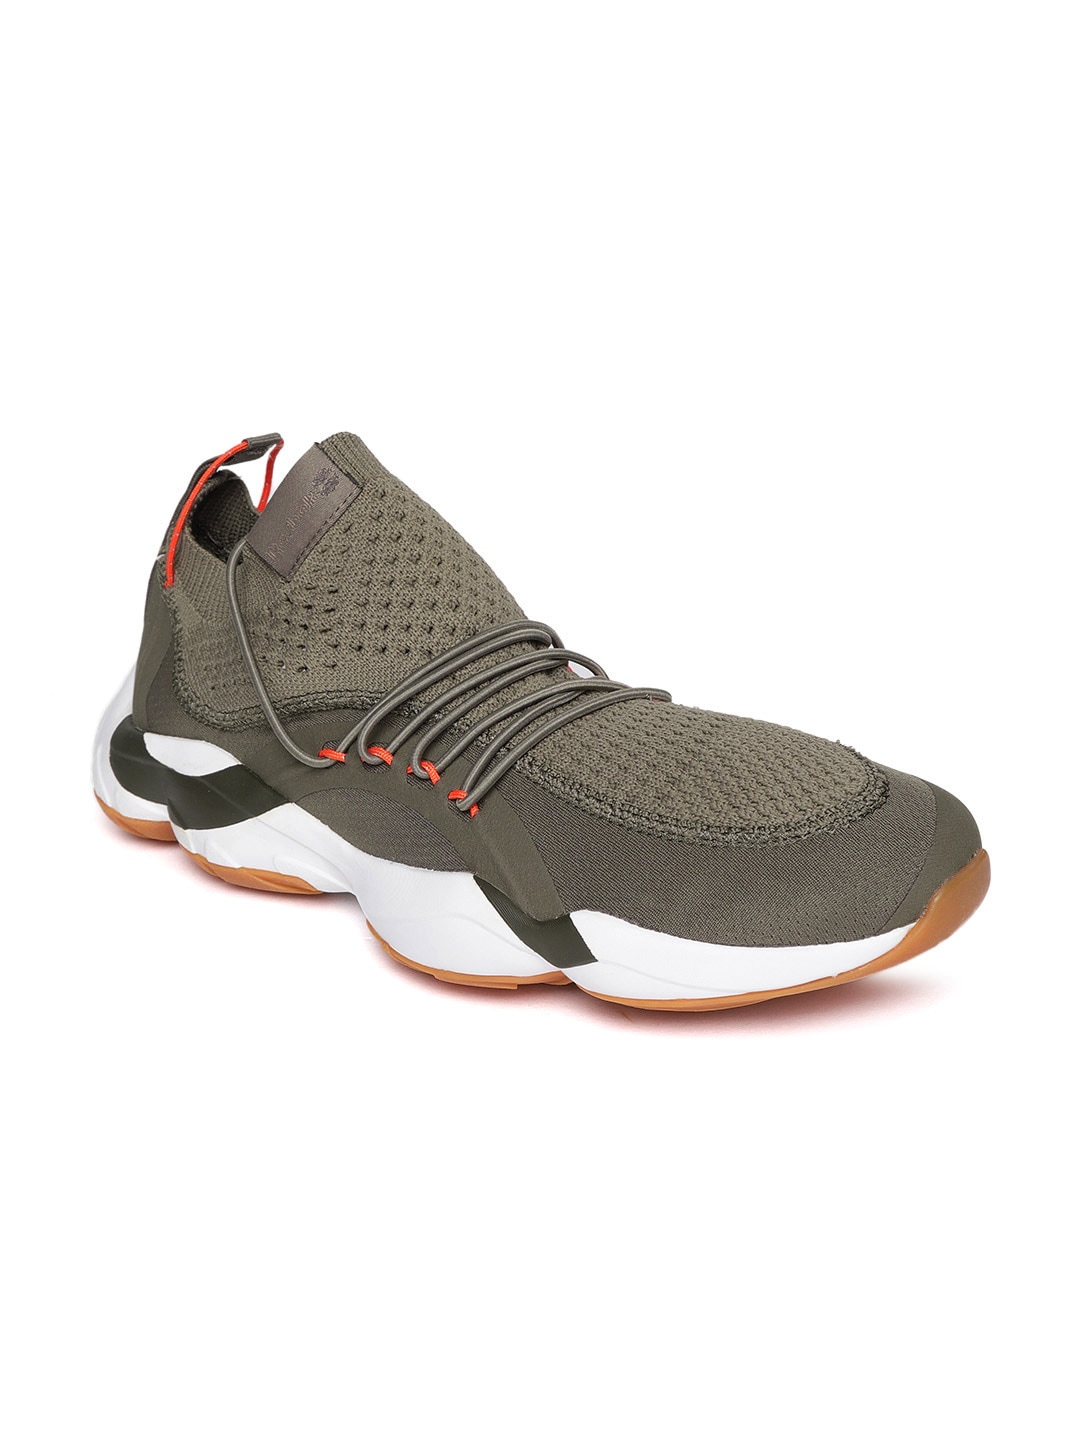 1f4e9a9fcd88 Fusion Sports Shoes - Buy Fusion Sports Shoes online in India